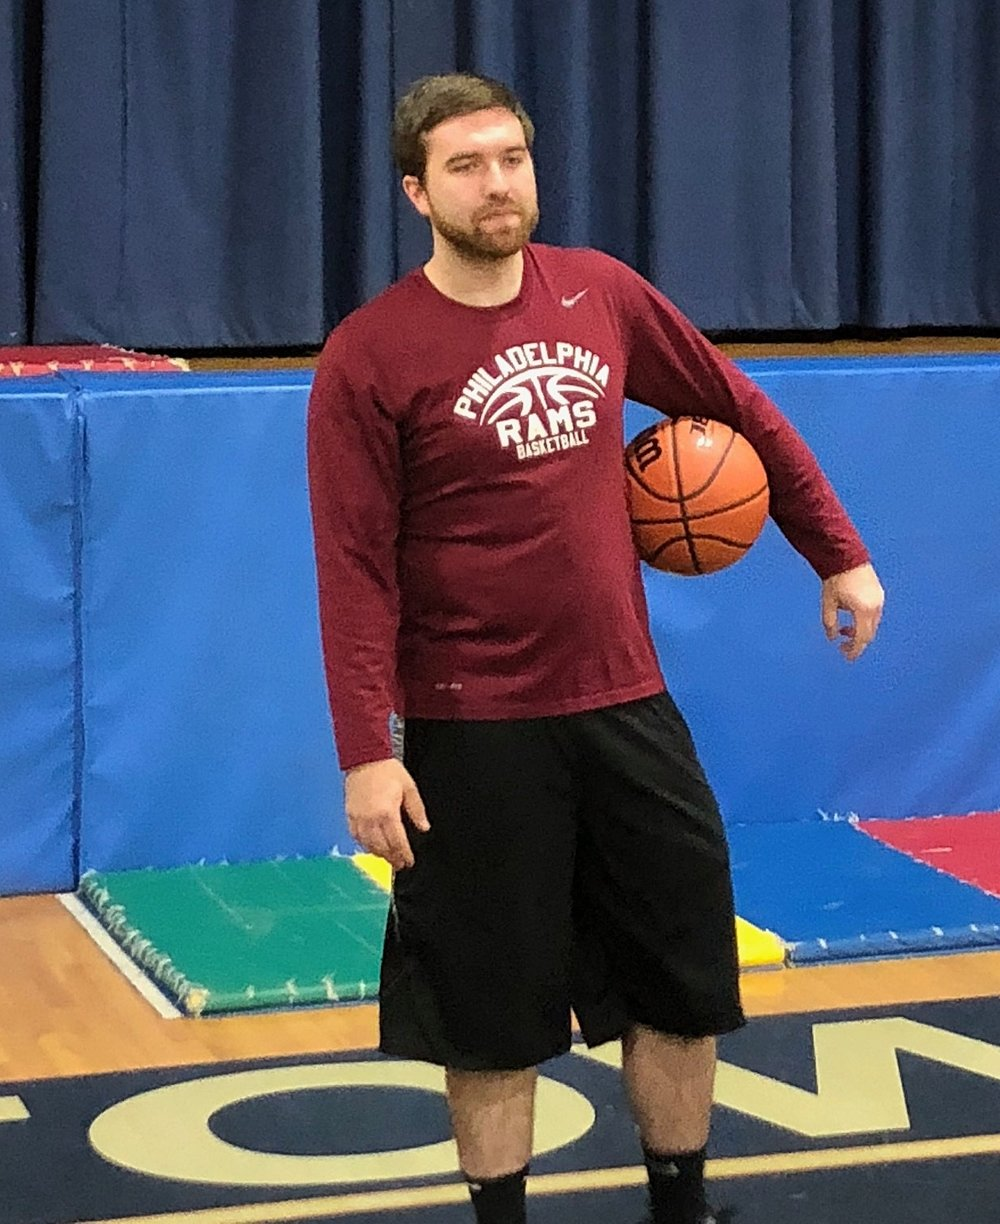 Boys Basketball Coach - Tyler started working with Baseline Hoops in 2017. He attended Middle Township High School and was a 4 year basketball player at Philadelphia University. Tyler went to 2 NCAA tournaments for Division II with Philadelphia University, and helped his team to 1 Conference Championship.Favorite Basketball Player: J.J ReddickFavorite Basketball Team: The Philadelphia 76ersMost Influential Coach to Tyler: Herb Magee, College CoachFavorite basketball moment: Winning Conference ChampionshipTraining and Coaching Specialty: Shooting, Coaching Strategy.